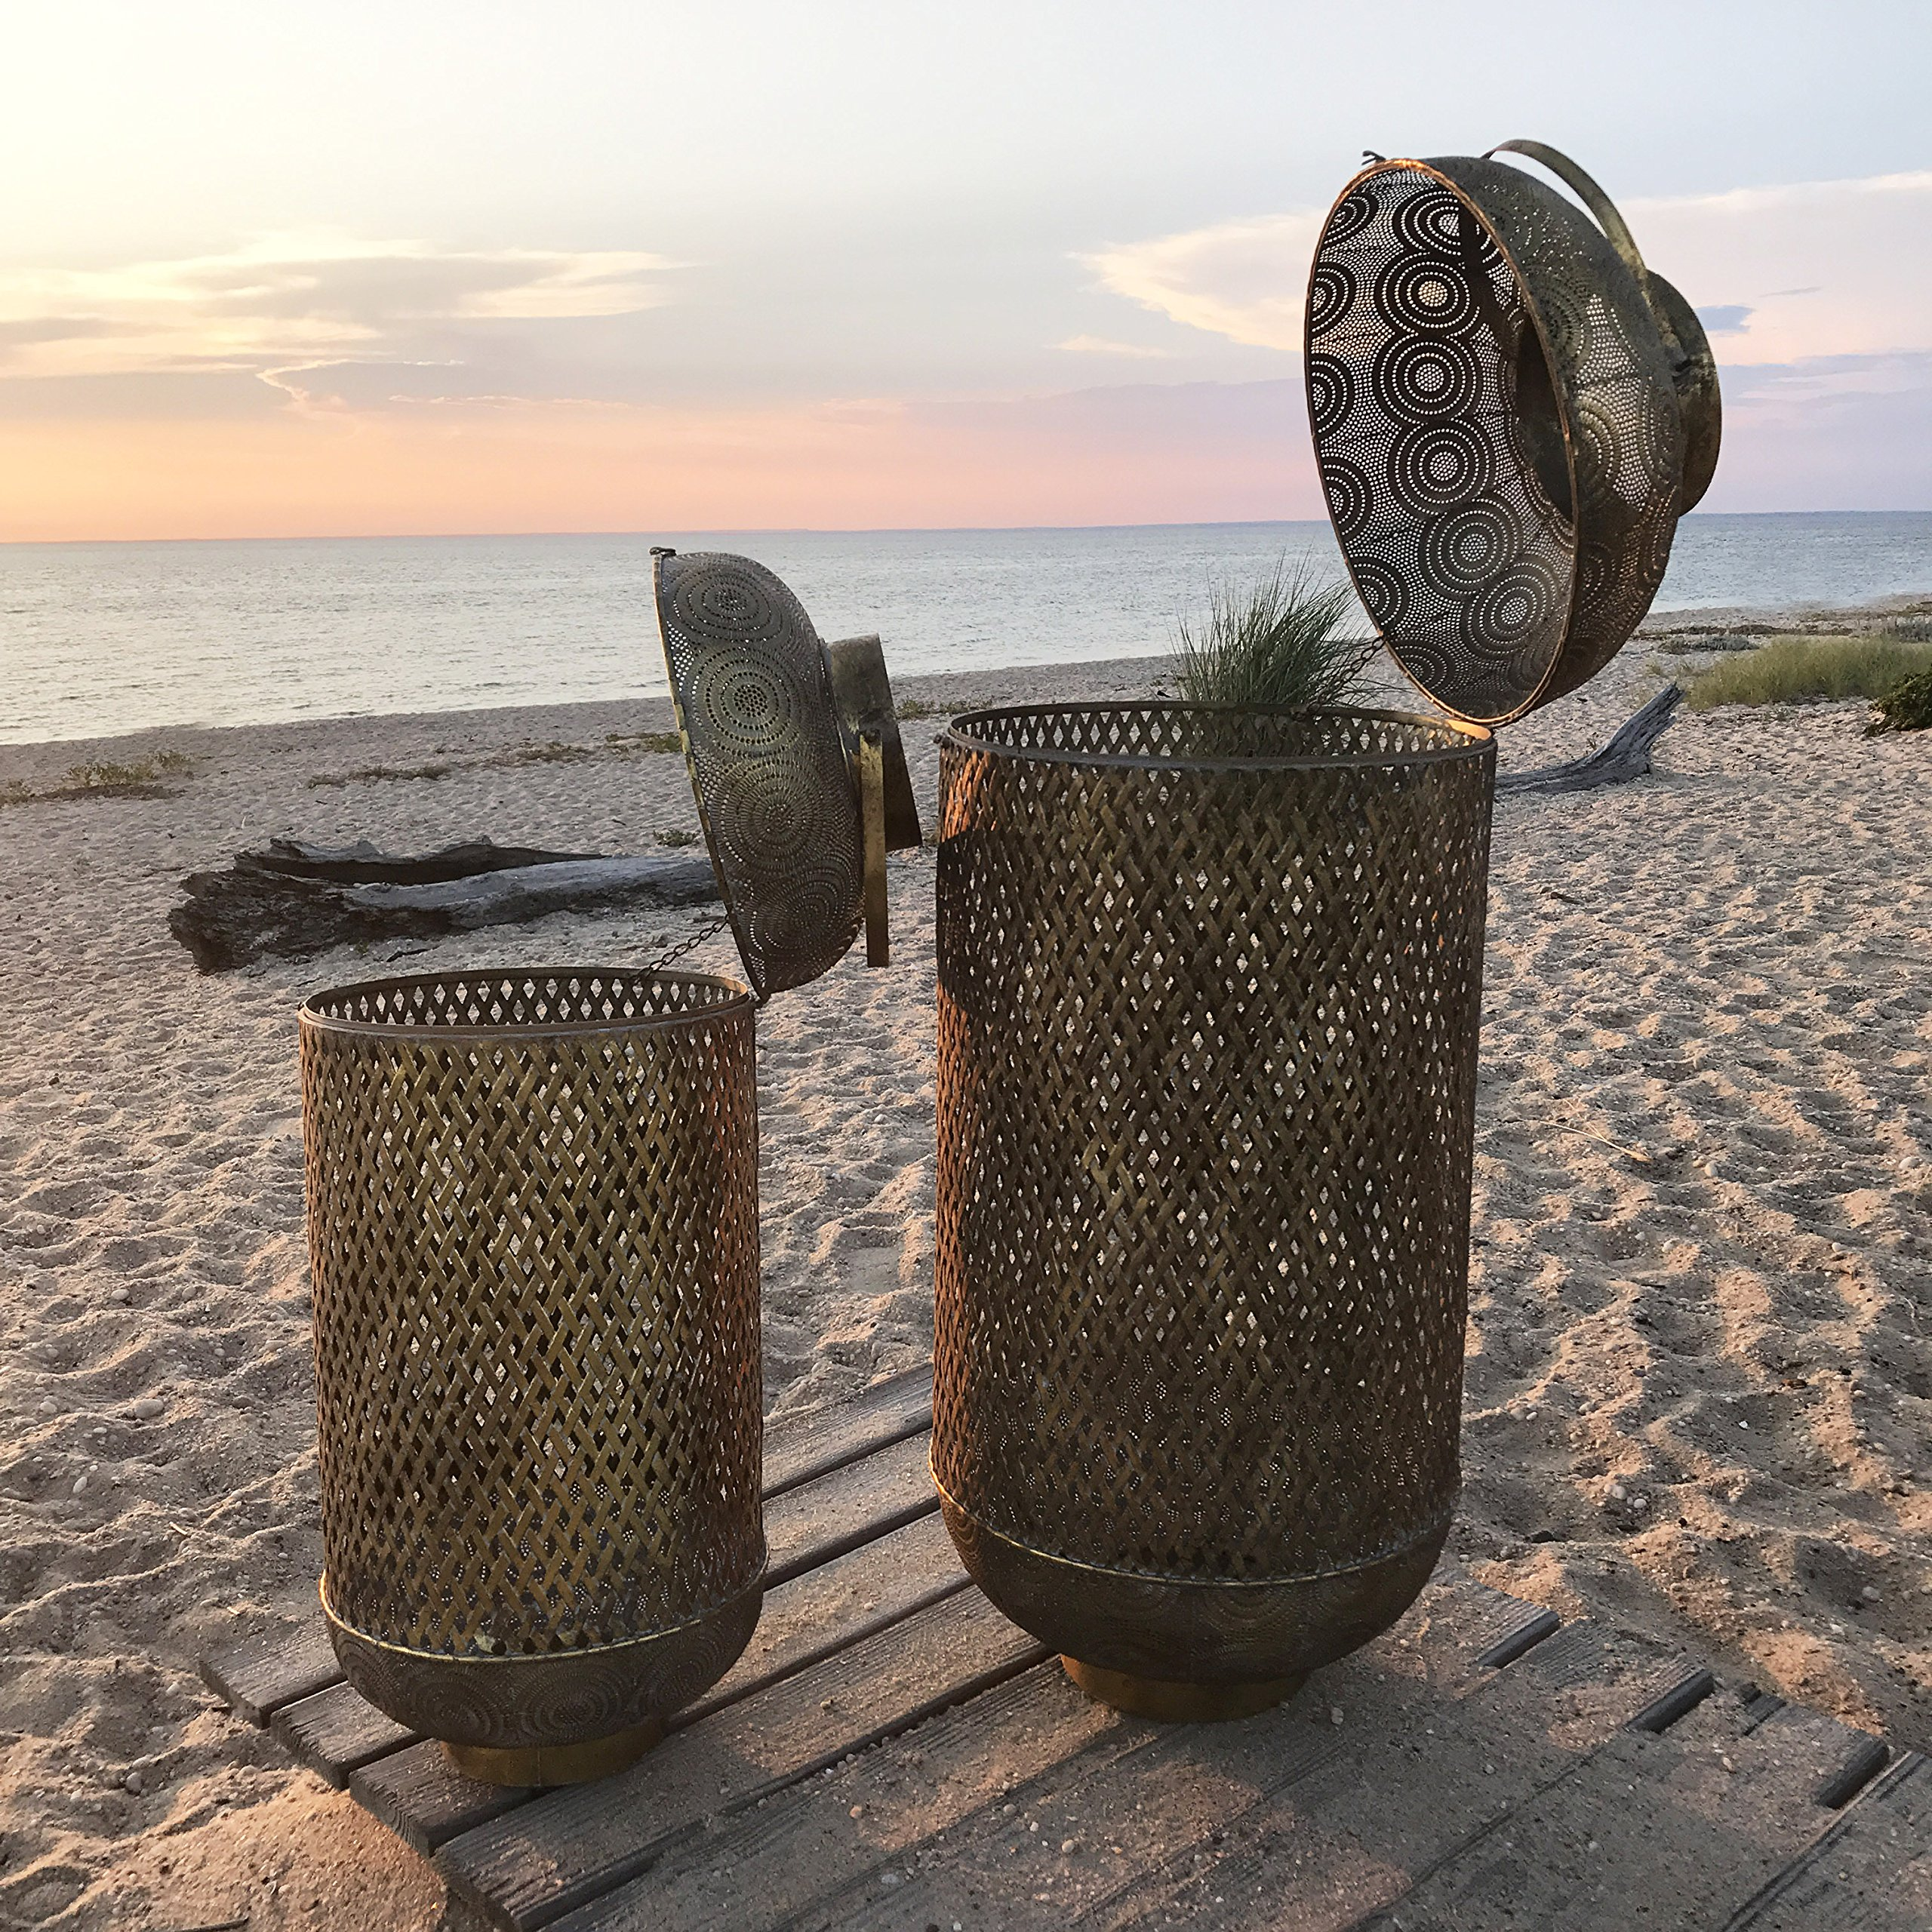 The Moroccan Temple Lanterns, Oversized Floor Hurricanes, Set of 2, For LED or Wax Candles, 3 Ft 4'' and 2 Ft 7'''' Tall, Brass Metal, Hinged Top, From the Global Chic Collection, By Whole House Worlds'' by Whole House Worlds (Image #2)